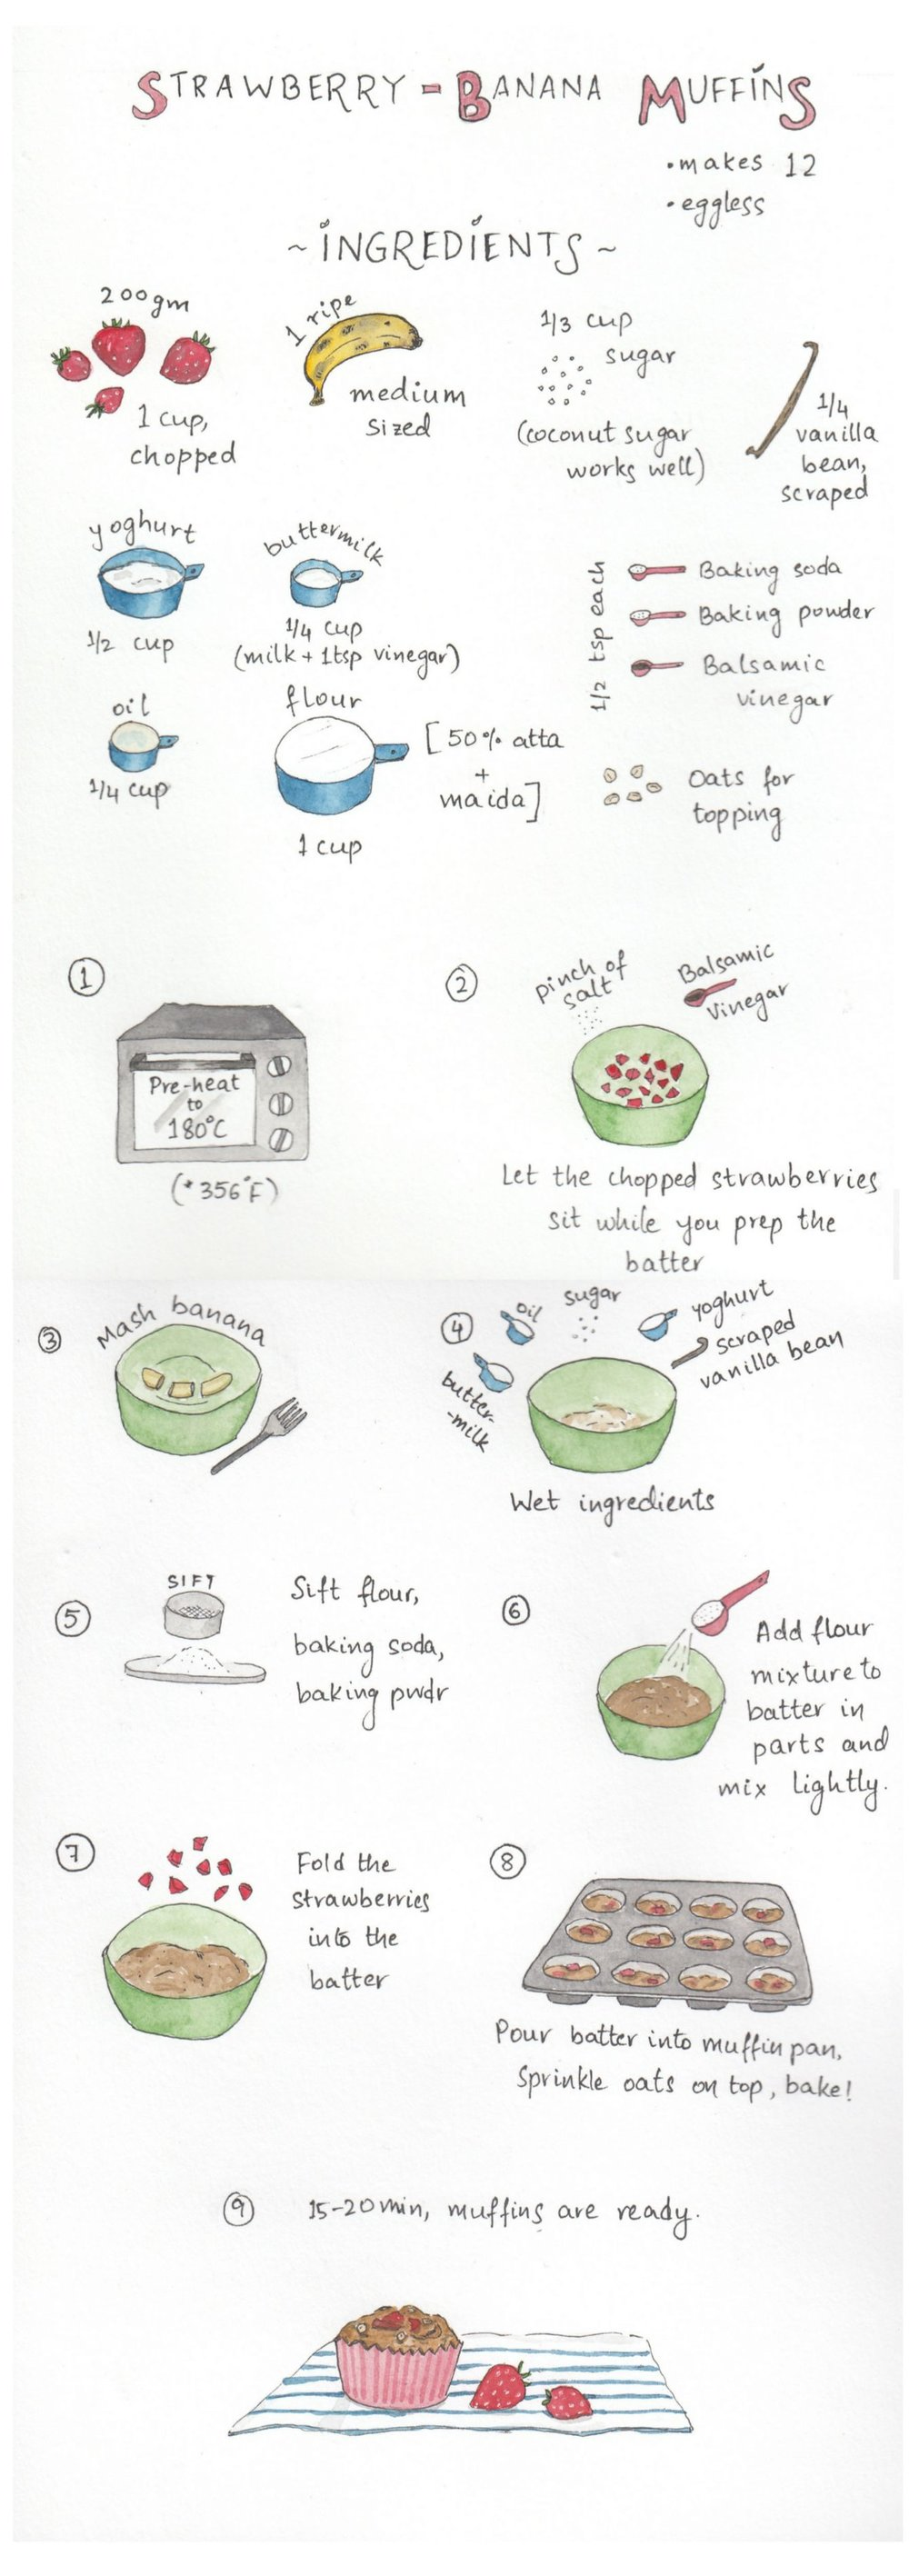 Illustrated recipe for strawberry banana muffins